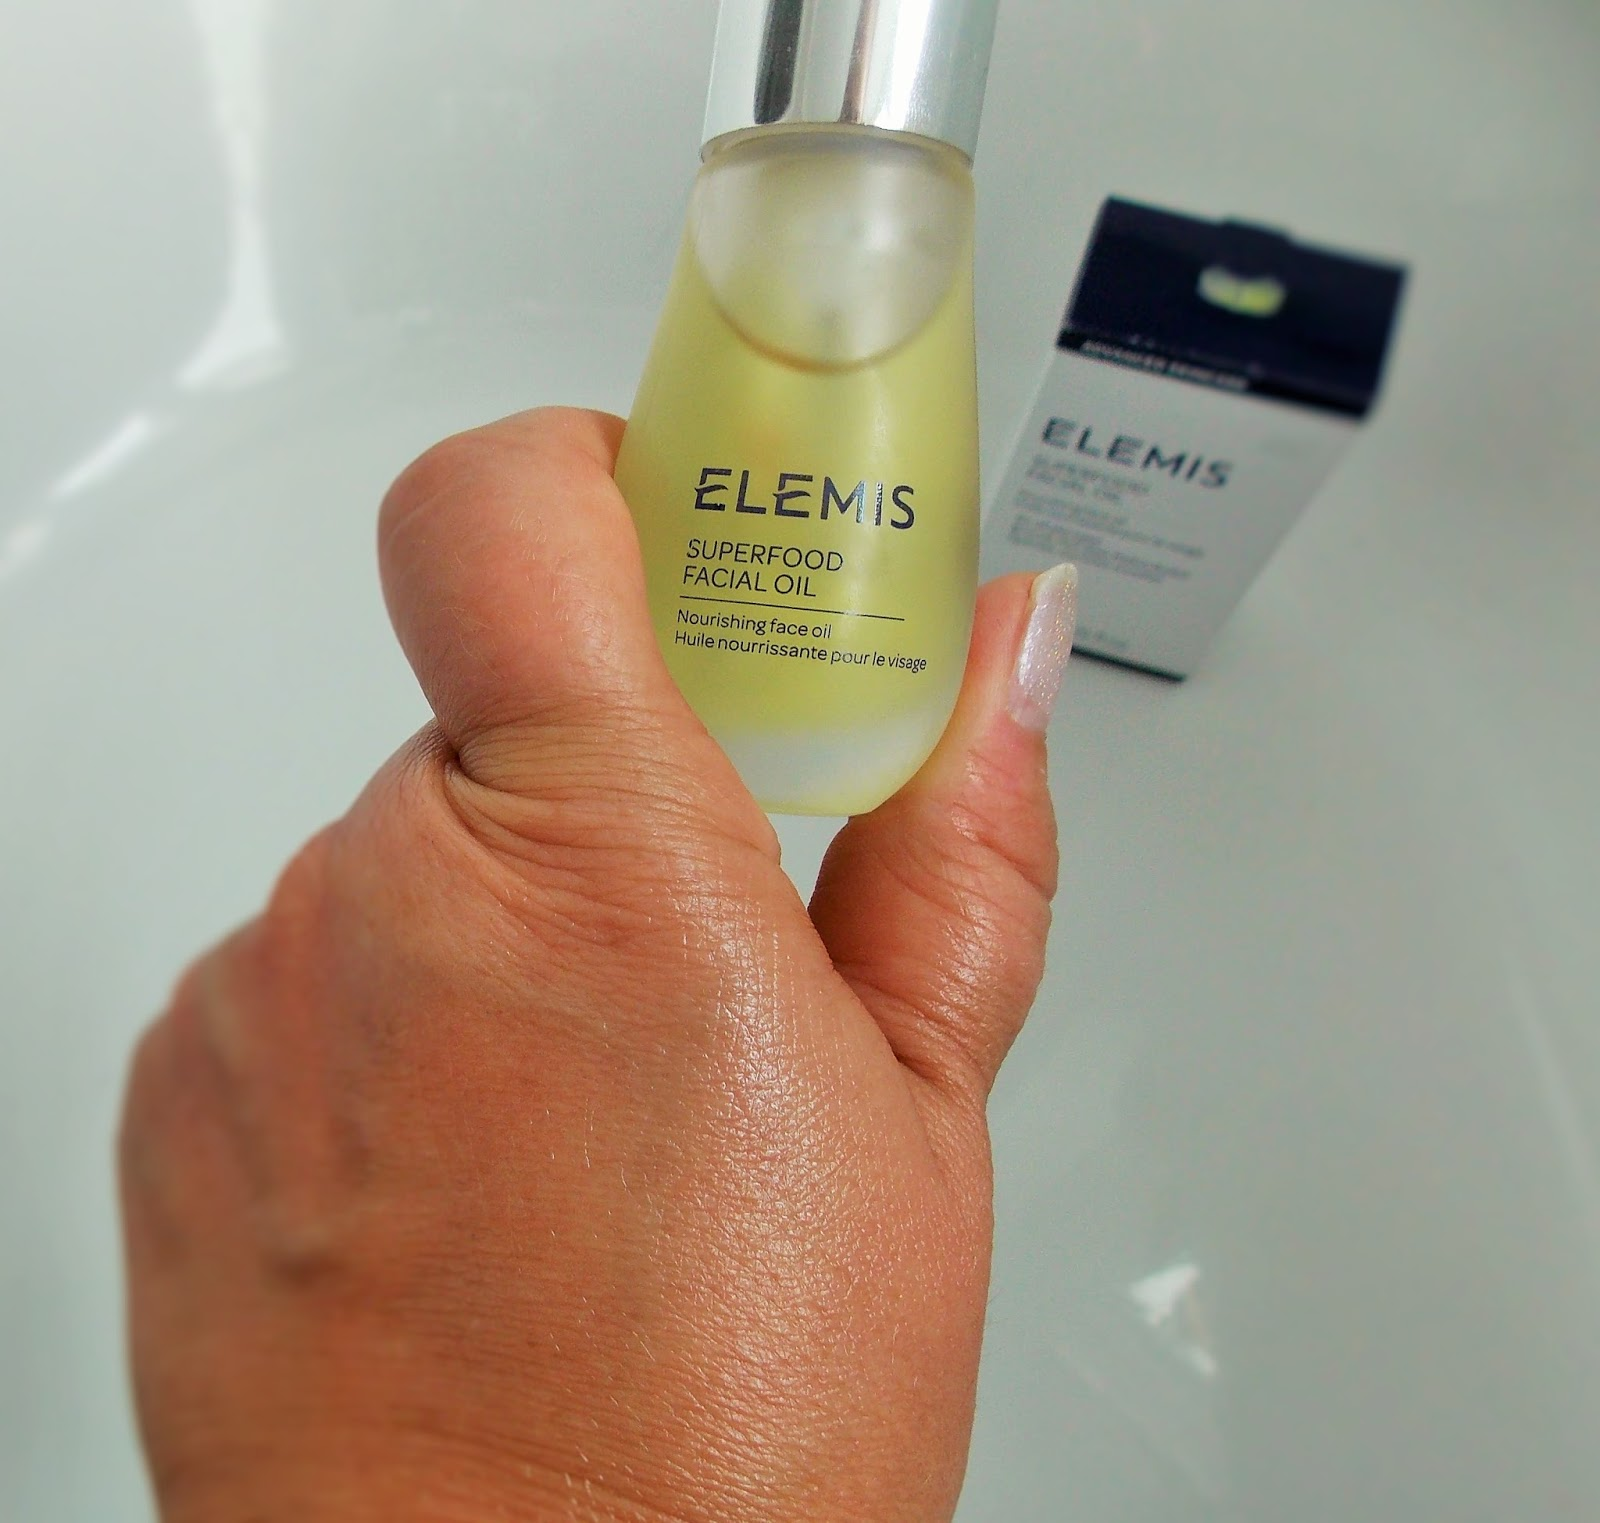 elemis superfood facial oil the glow is evident on my hand